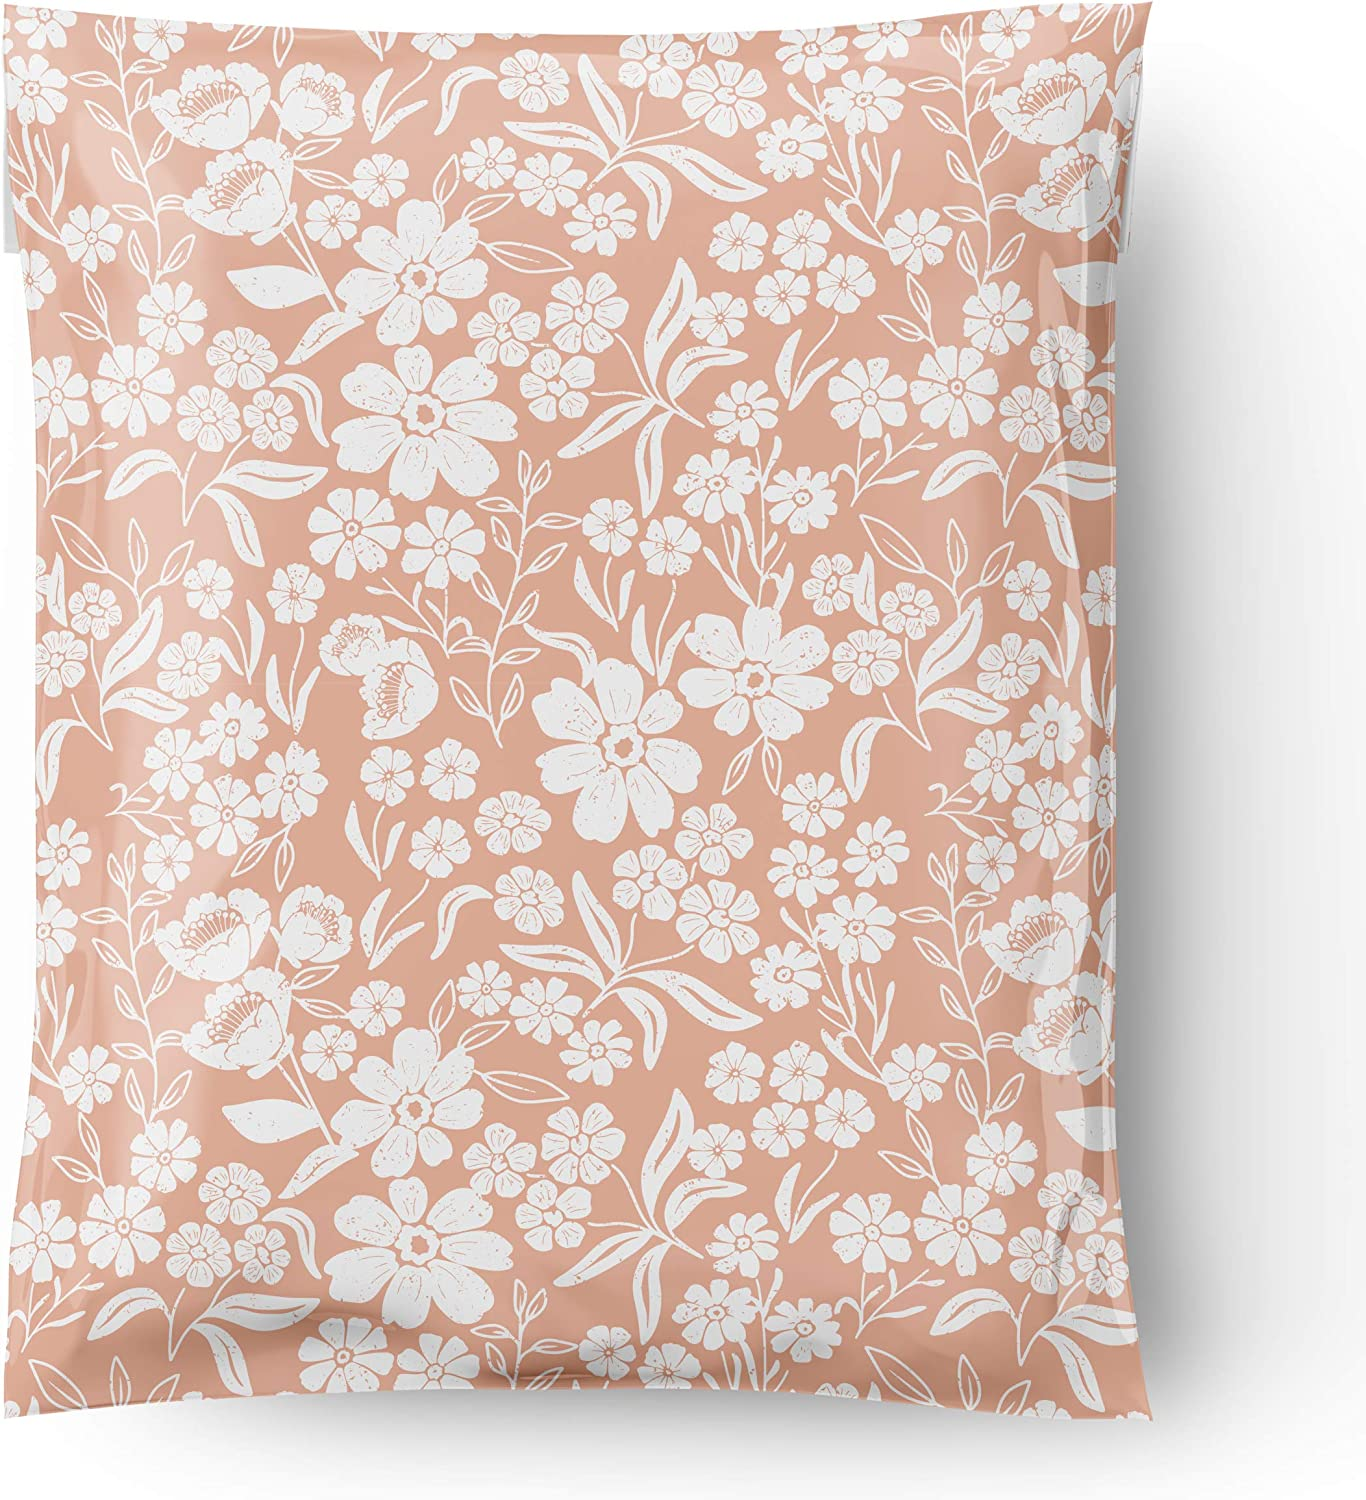 6x9 Poly Mailer Envelopes In a popularity 100 Colored Small-Sized Floral Des At the price Pcs